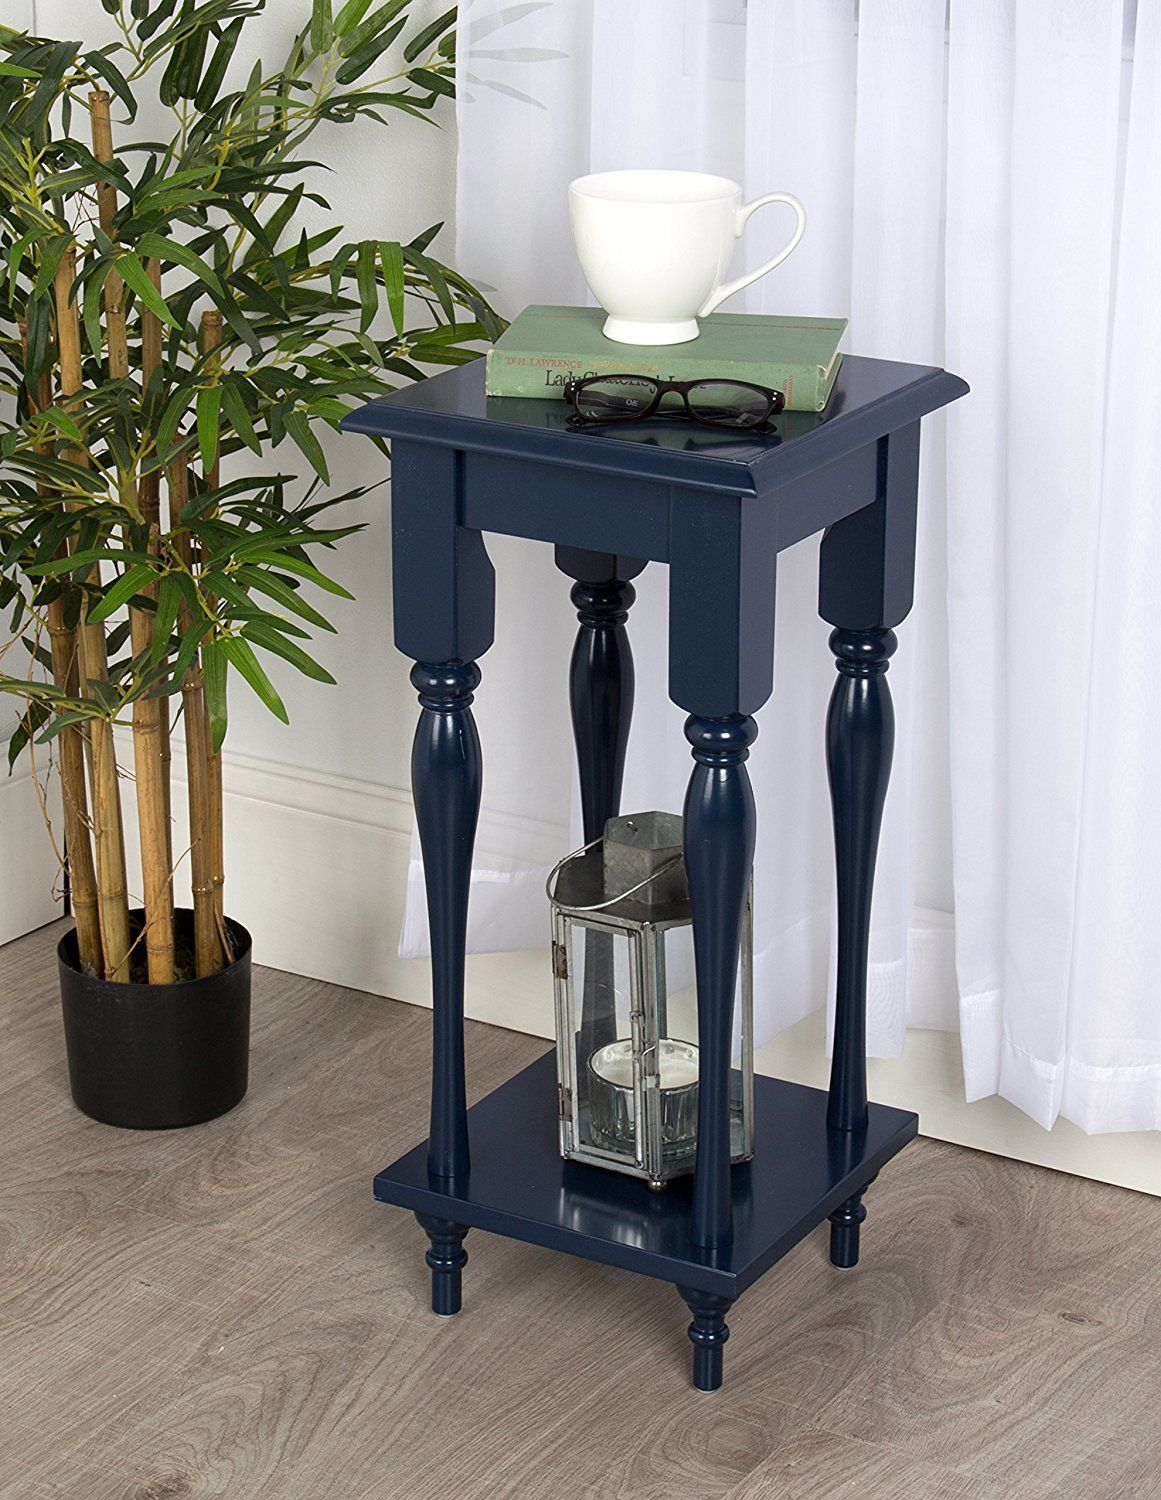 kate and laurel sophia rustic wood top plant stand end table with accent shelf navy blue comfortable drum throne dale tiffany stained glass lamp shade vintage drop leaf dining